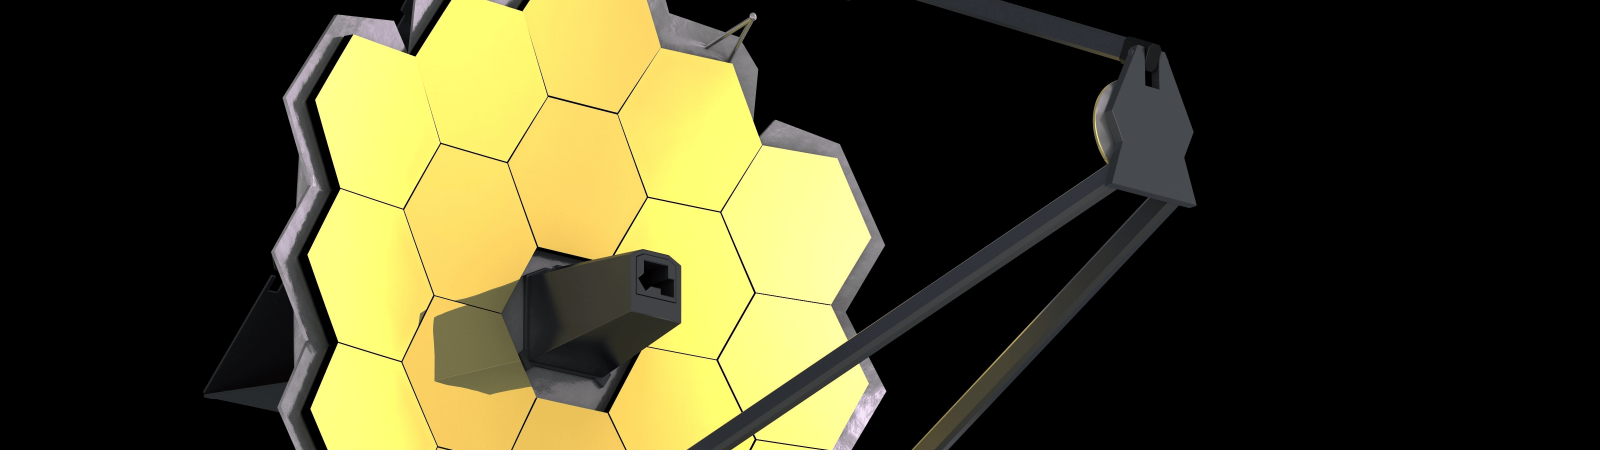 James Webb Space Telescope Space Materials Testing